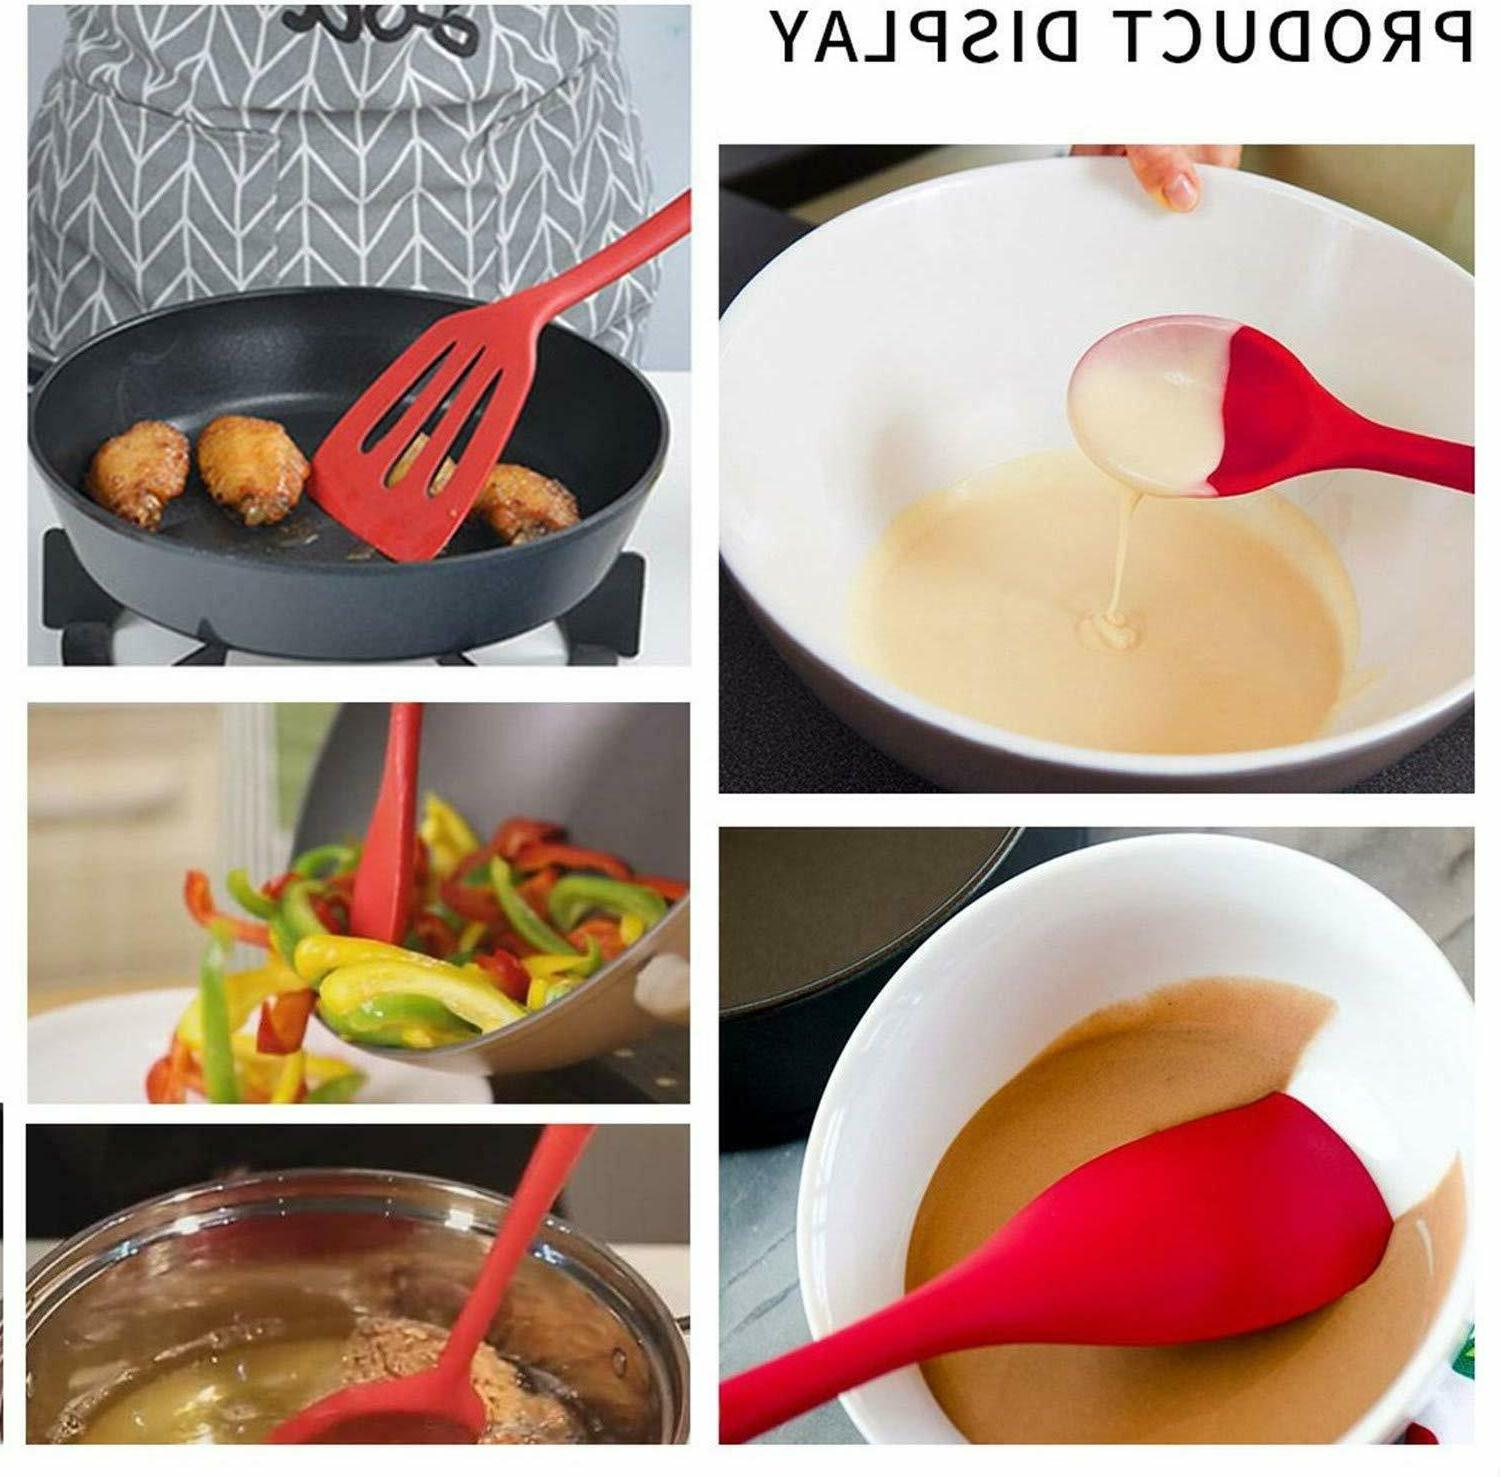 10 Pcs Silicone Cooking Non-Stick Spoon Turner